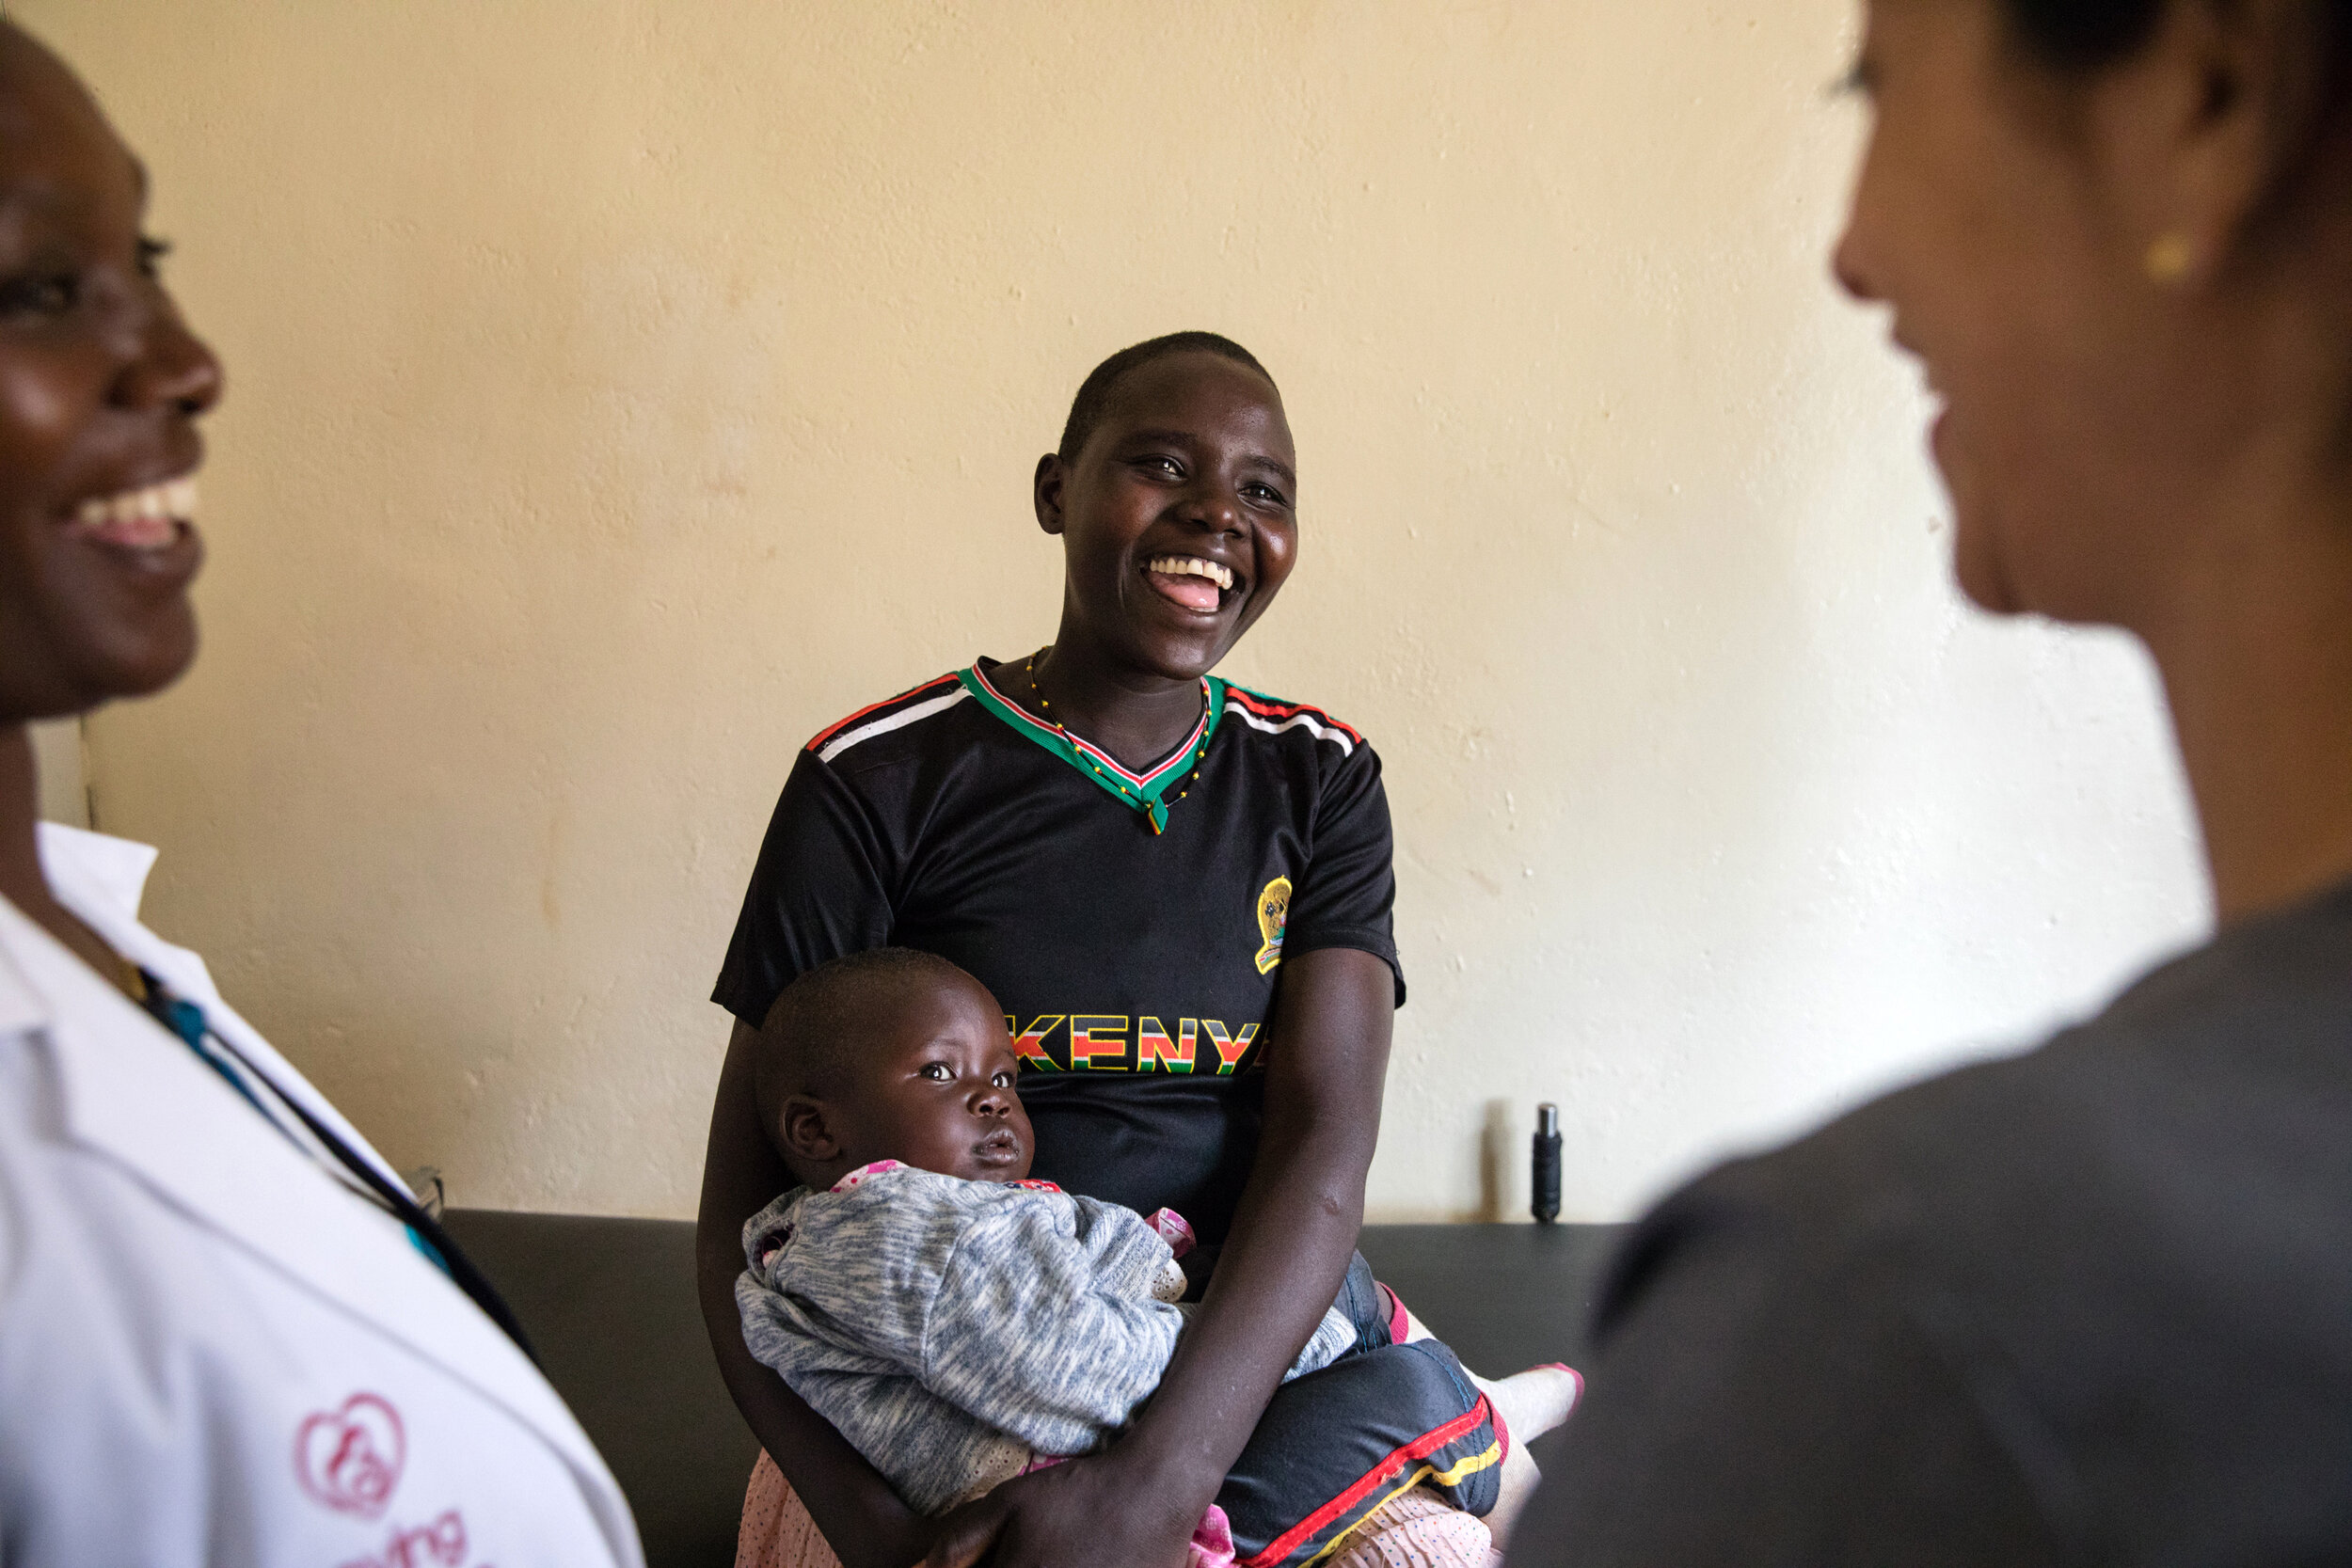 A Kenyan mother and her baby who received care from Saving Mothers.